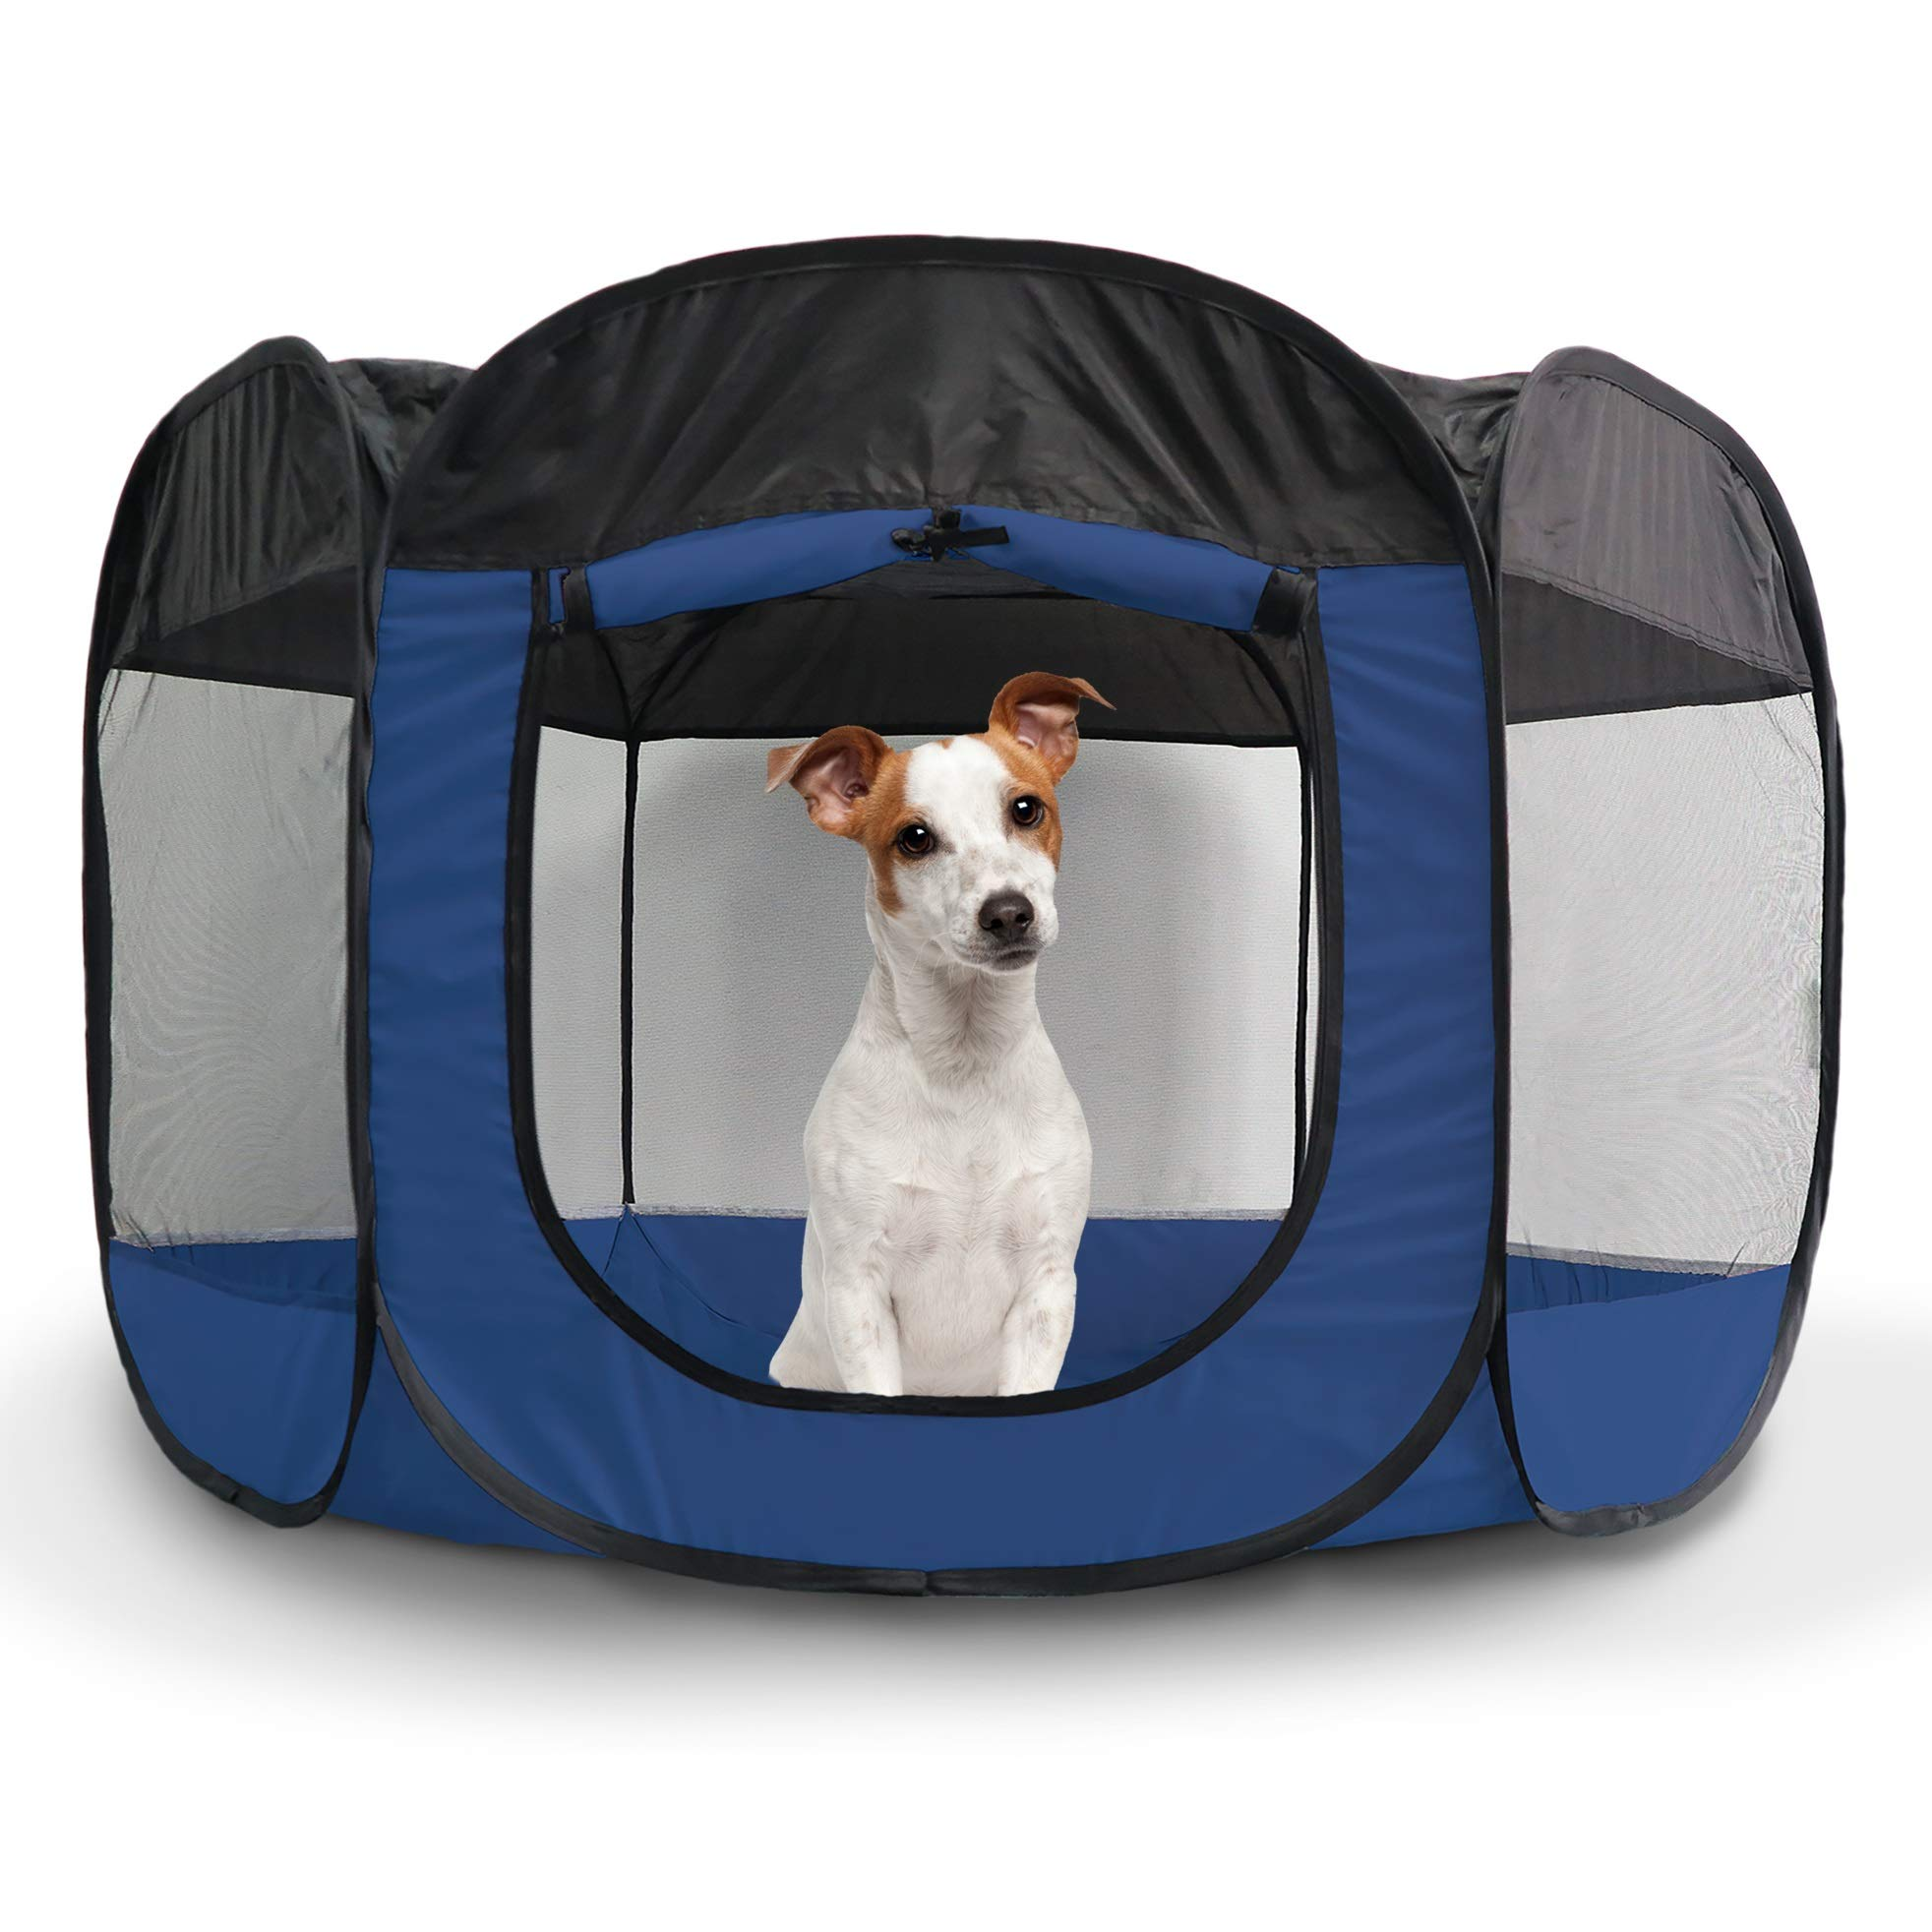 Furhaven Pet Playpen - Indoor/Outdoor Mesh Open-Air Playpen & Exercise Pen Tent House Playground for Dogs & Cats, Sailor Blue, Large